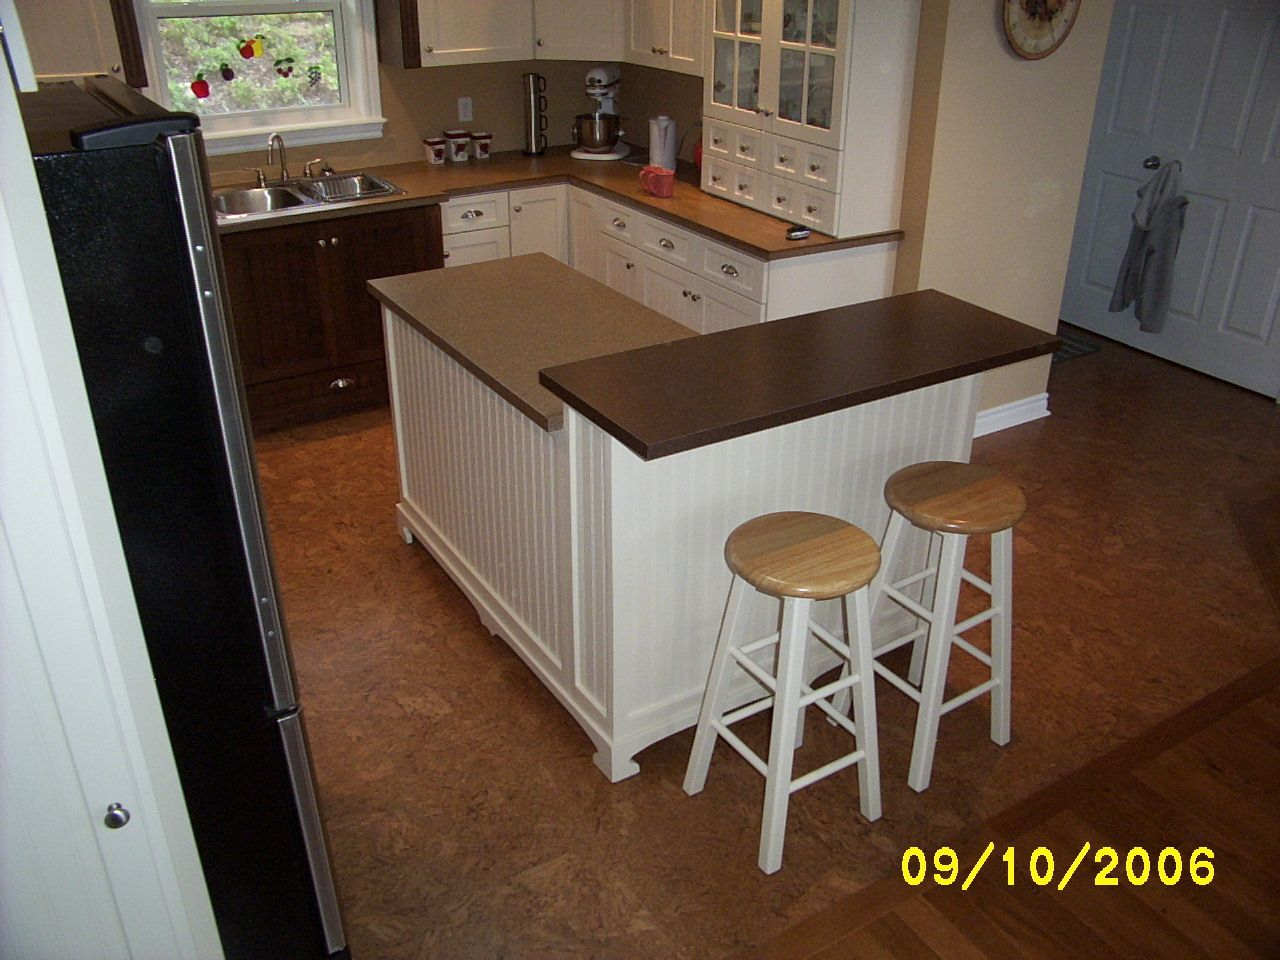 seating diy with kitchen island ~ homemade kitchen island: diy